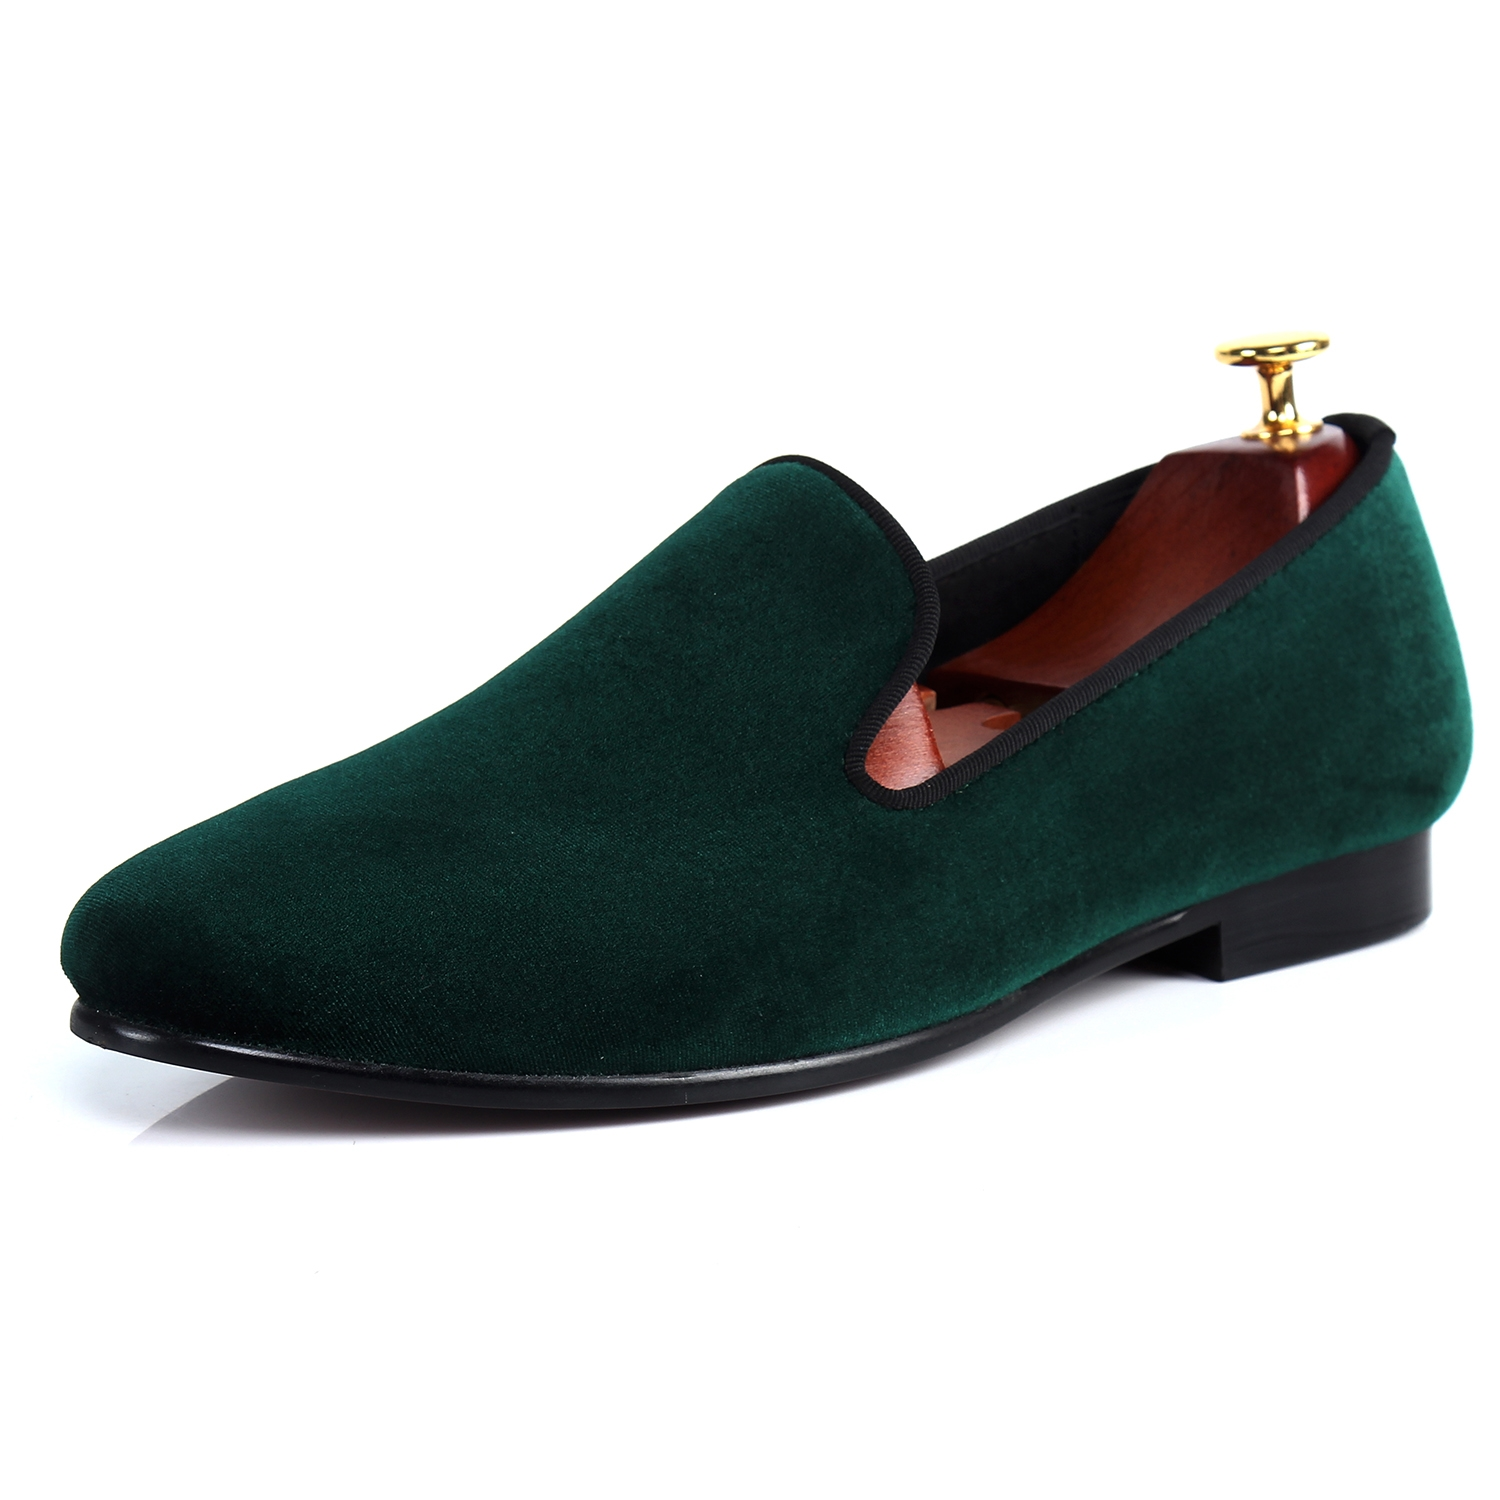 038e710d96f3 68.80  Watch here - Harpelunde Green Velvet Loafer Shoes For Men Flat  Wedding Shoes Handmade Plain Formal Shoes Size 7-14